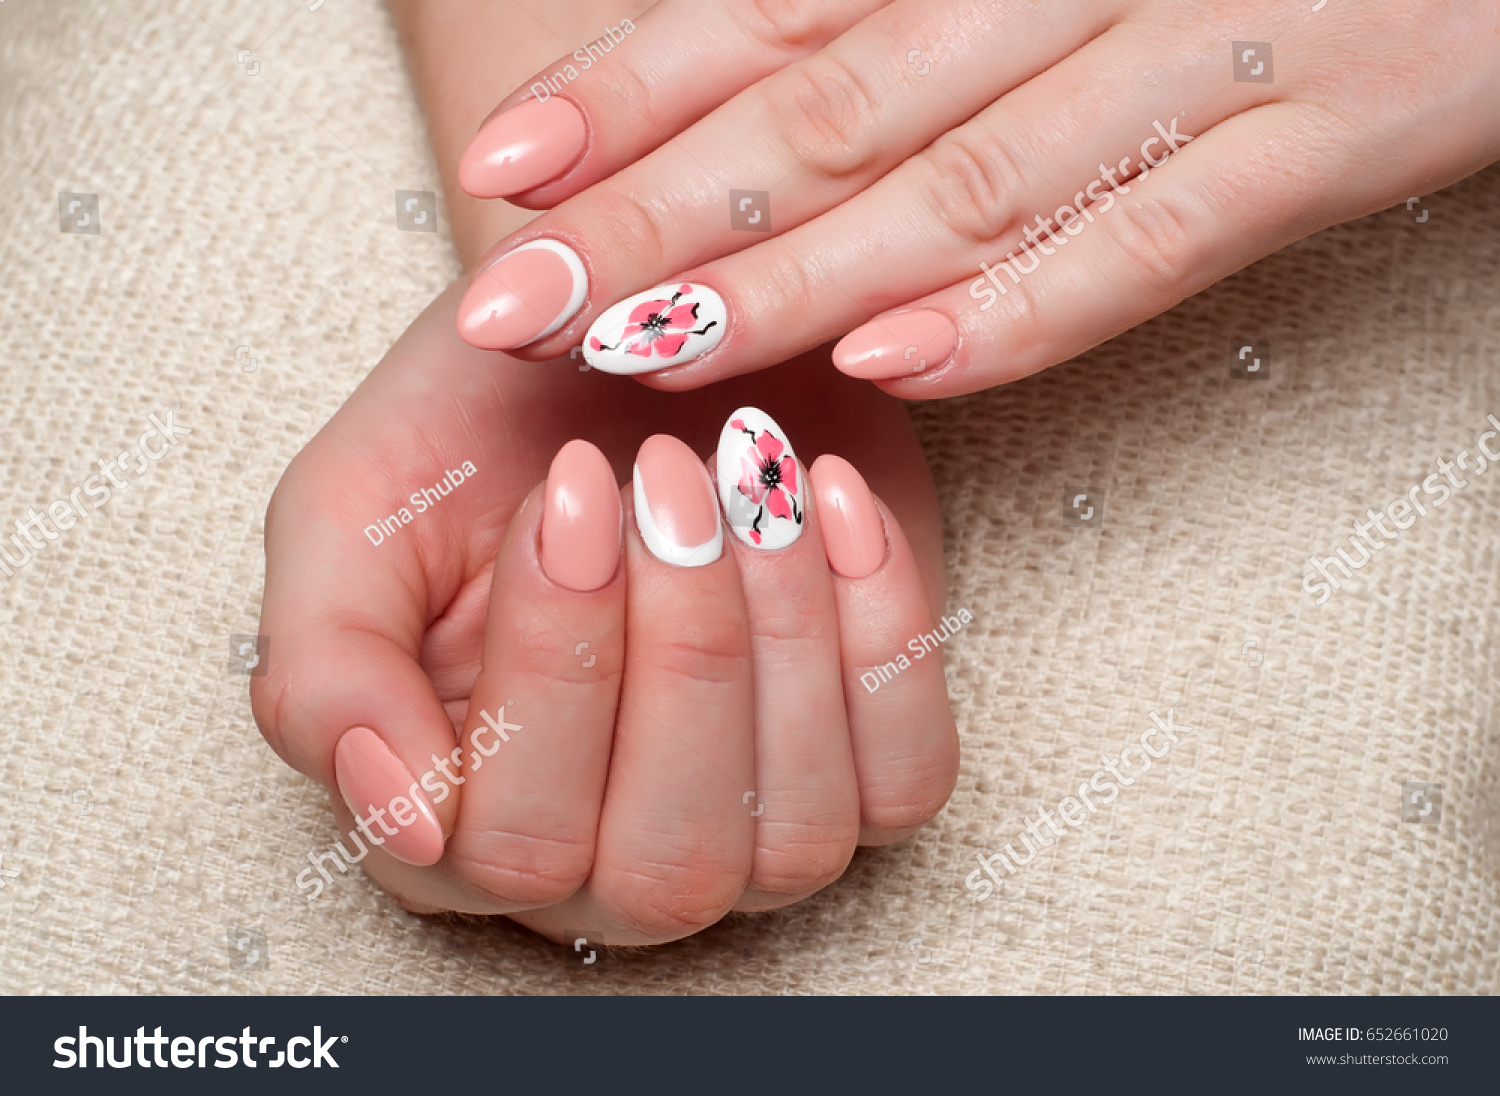 Pink Manicure Long Pointed Nails Manicure Stock Photo (Download Now ...